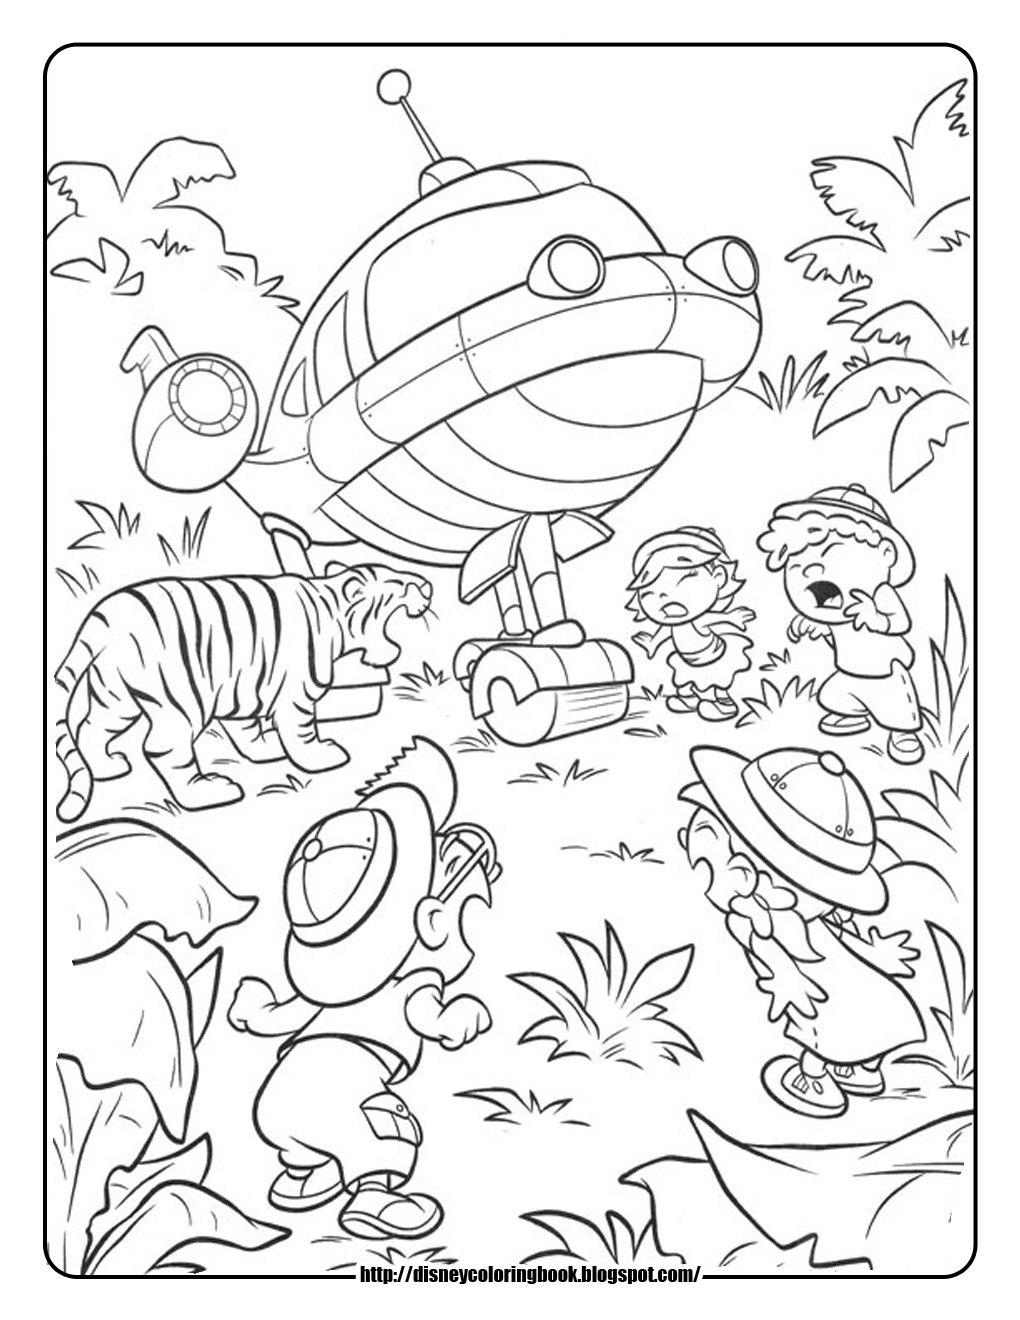 Little einsteins printable coloring pages at getdrawings com free